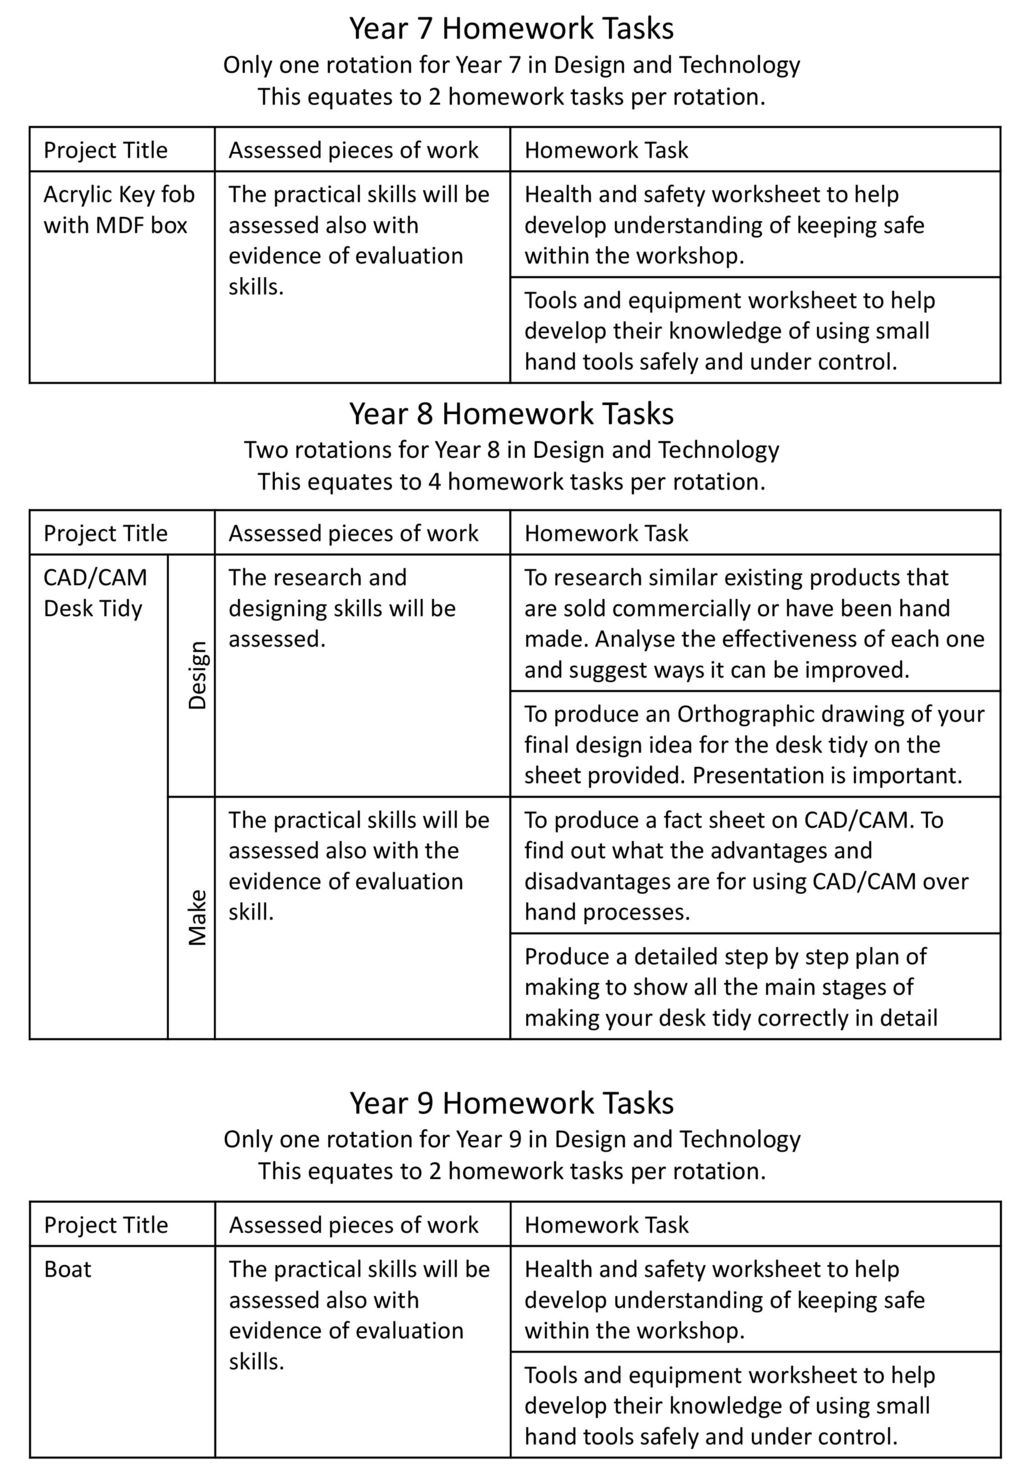 Year 7 Homework Tasks Year 8 Homework Tasks Year 9 Homework Tasks